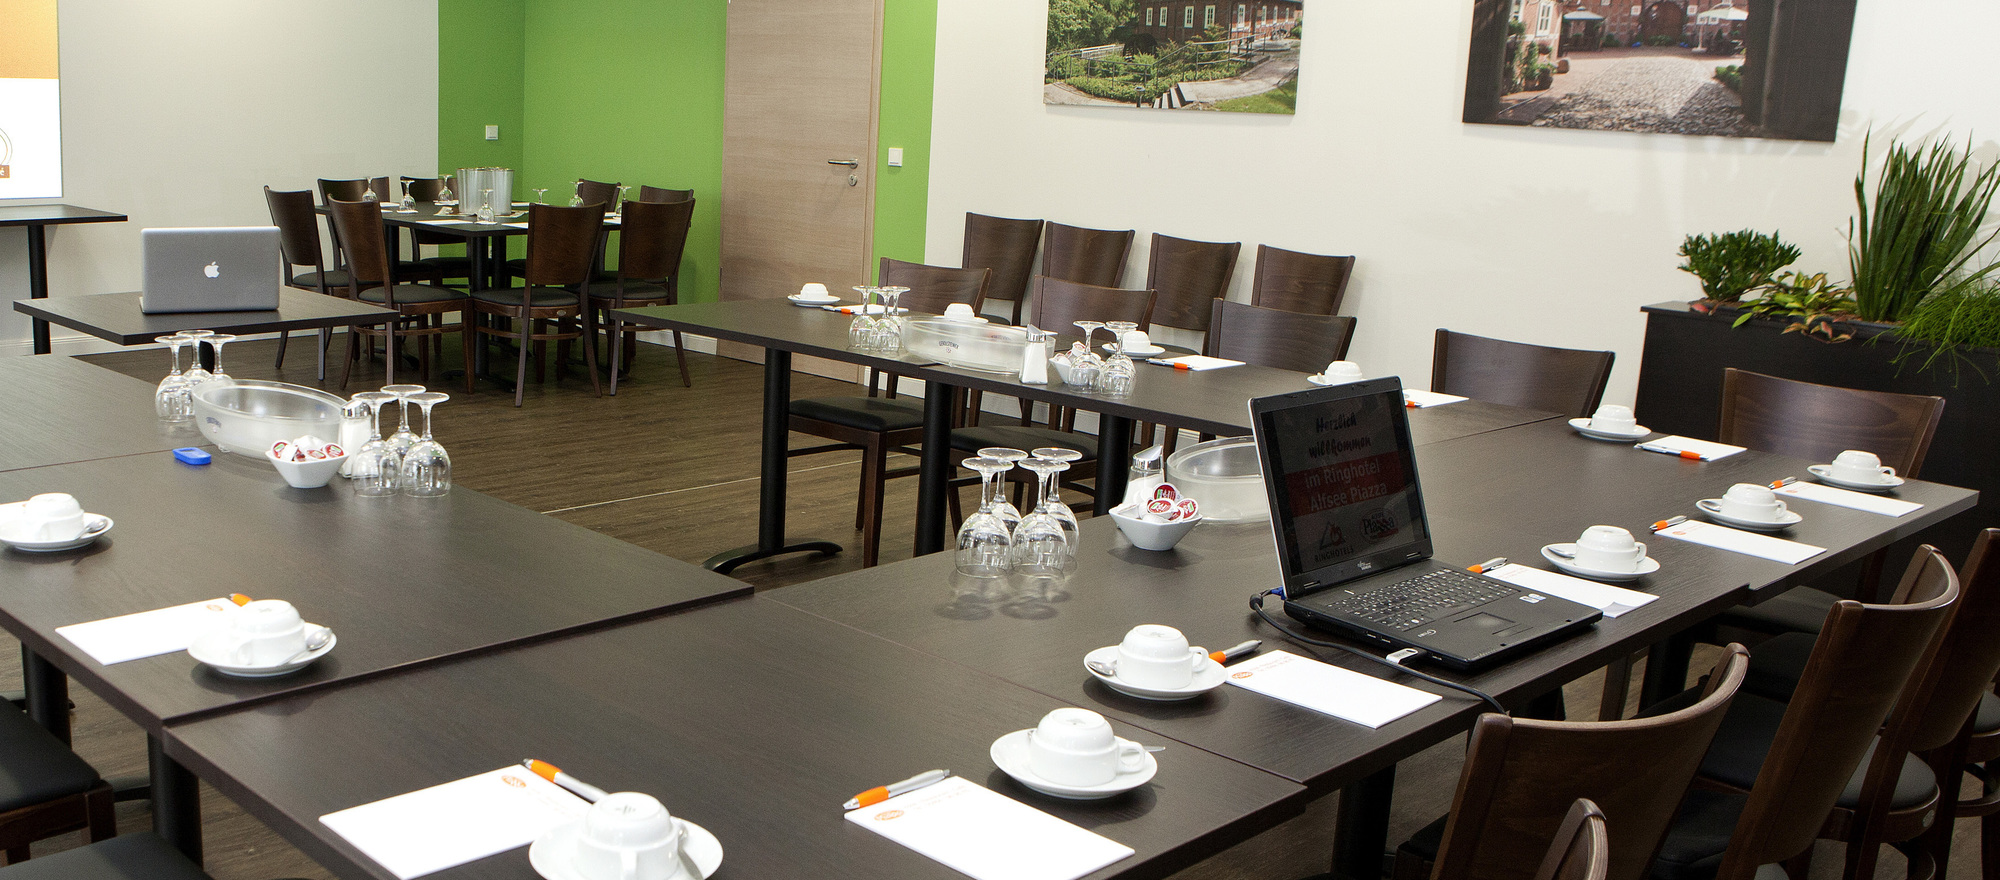 Conference and ceremonies in the 3-star-superior hotel Ringhotel Alfsee Piazza in Rieste